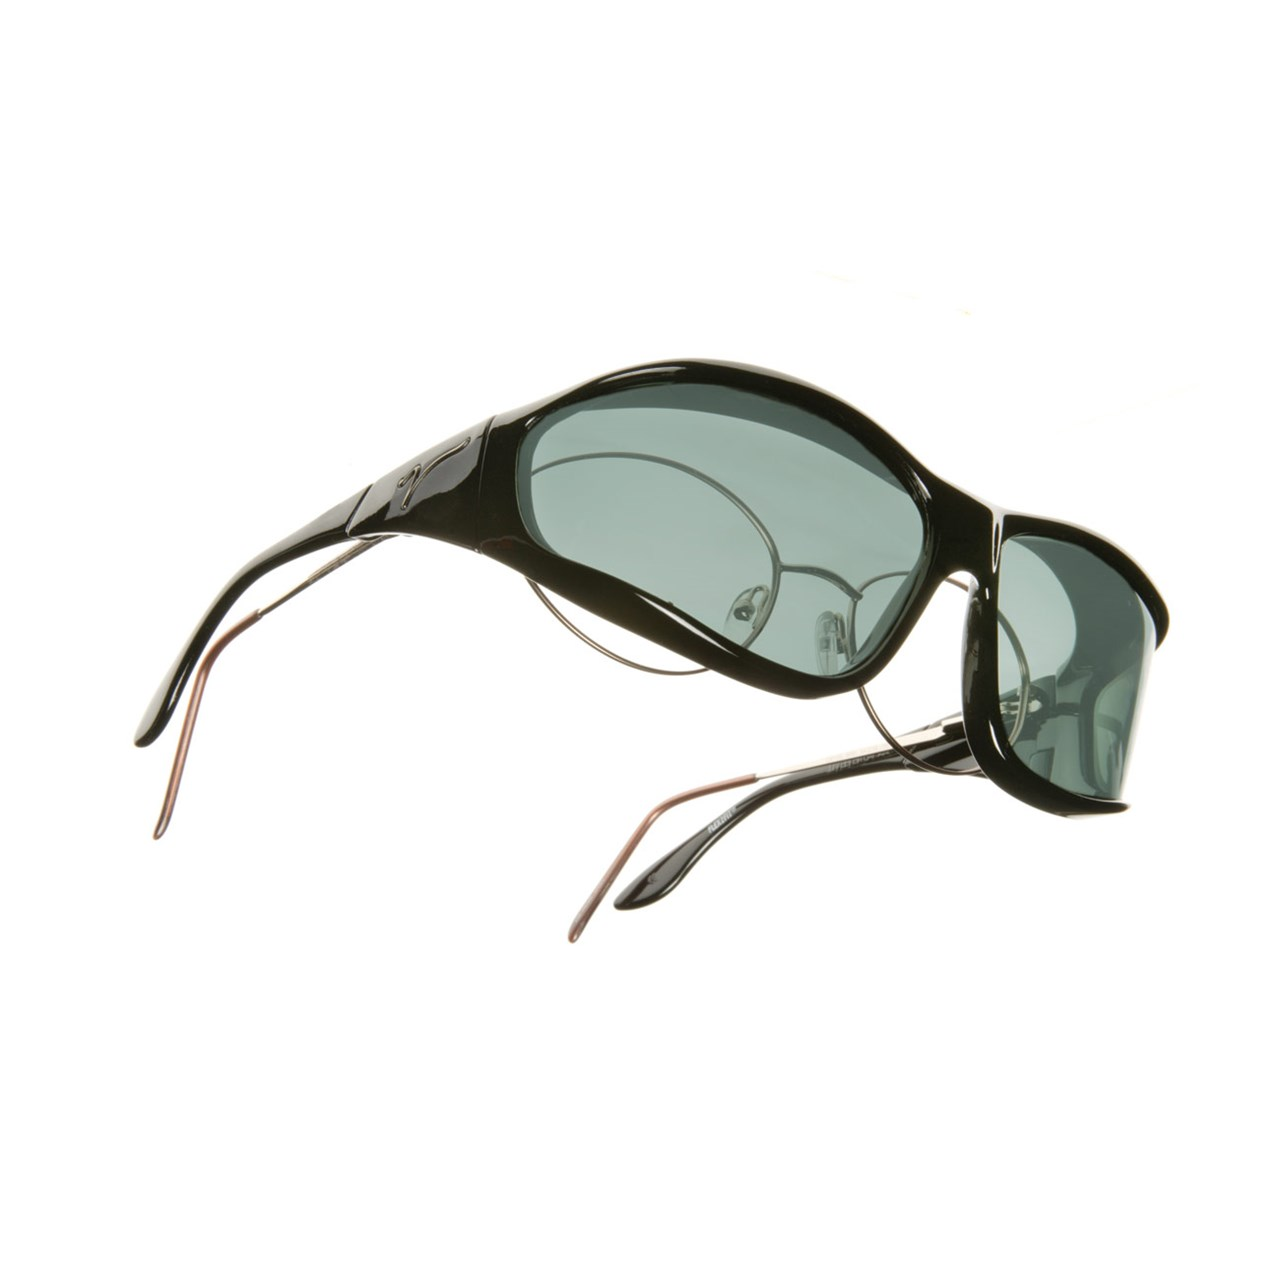 f4266f26d44d MaxiAids   Vistana Polarized Sunwear - Black Frame with Gray Lens- Size  Large